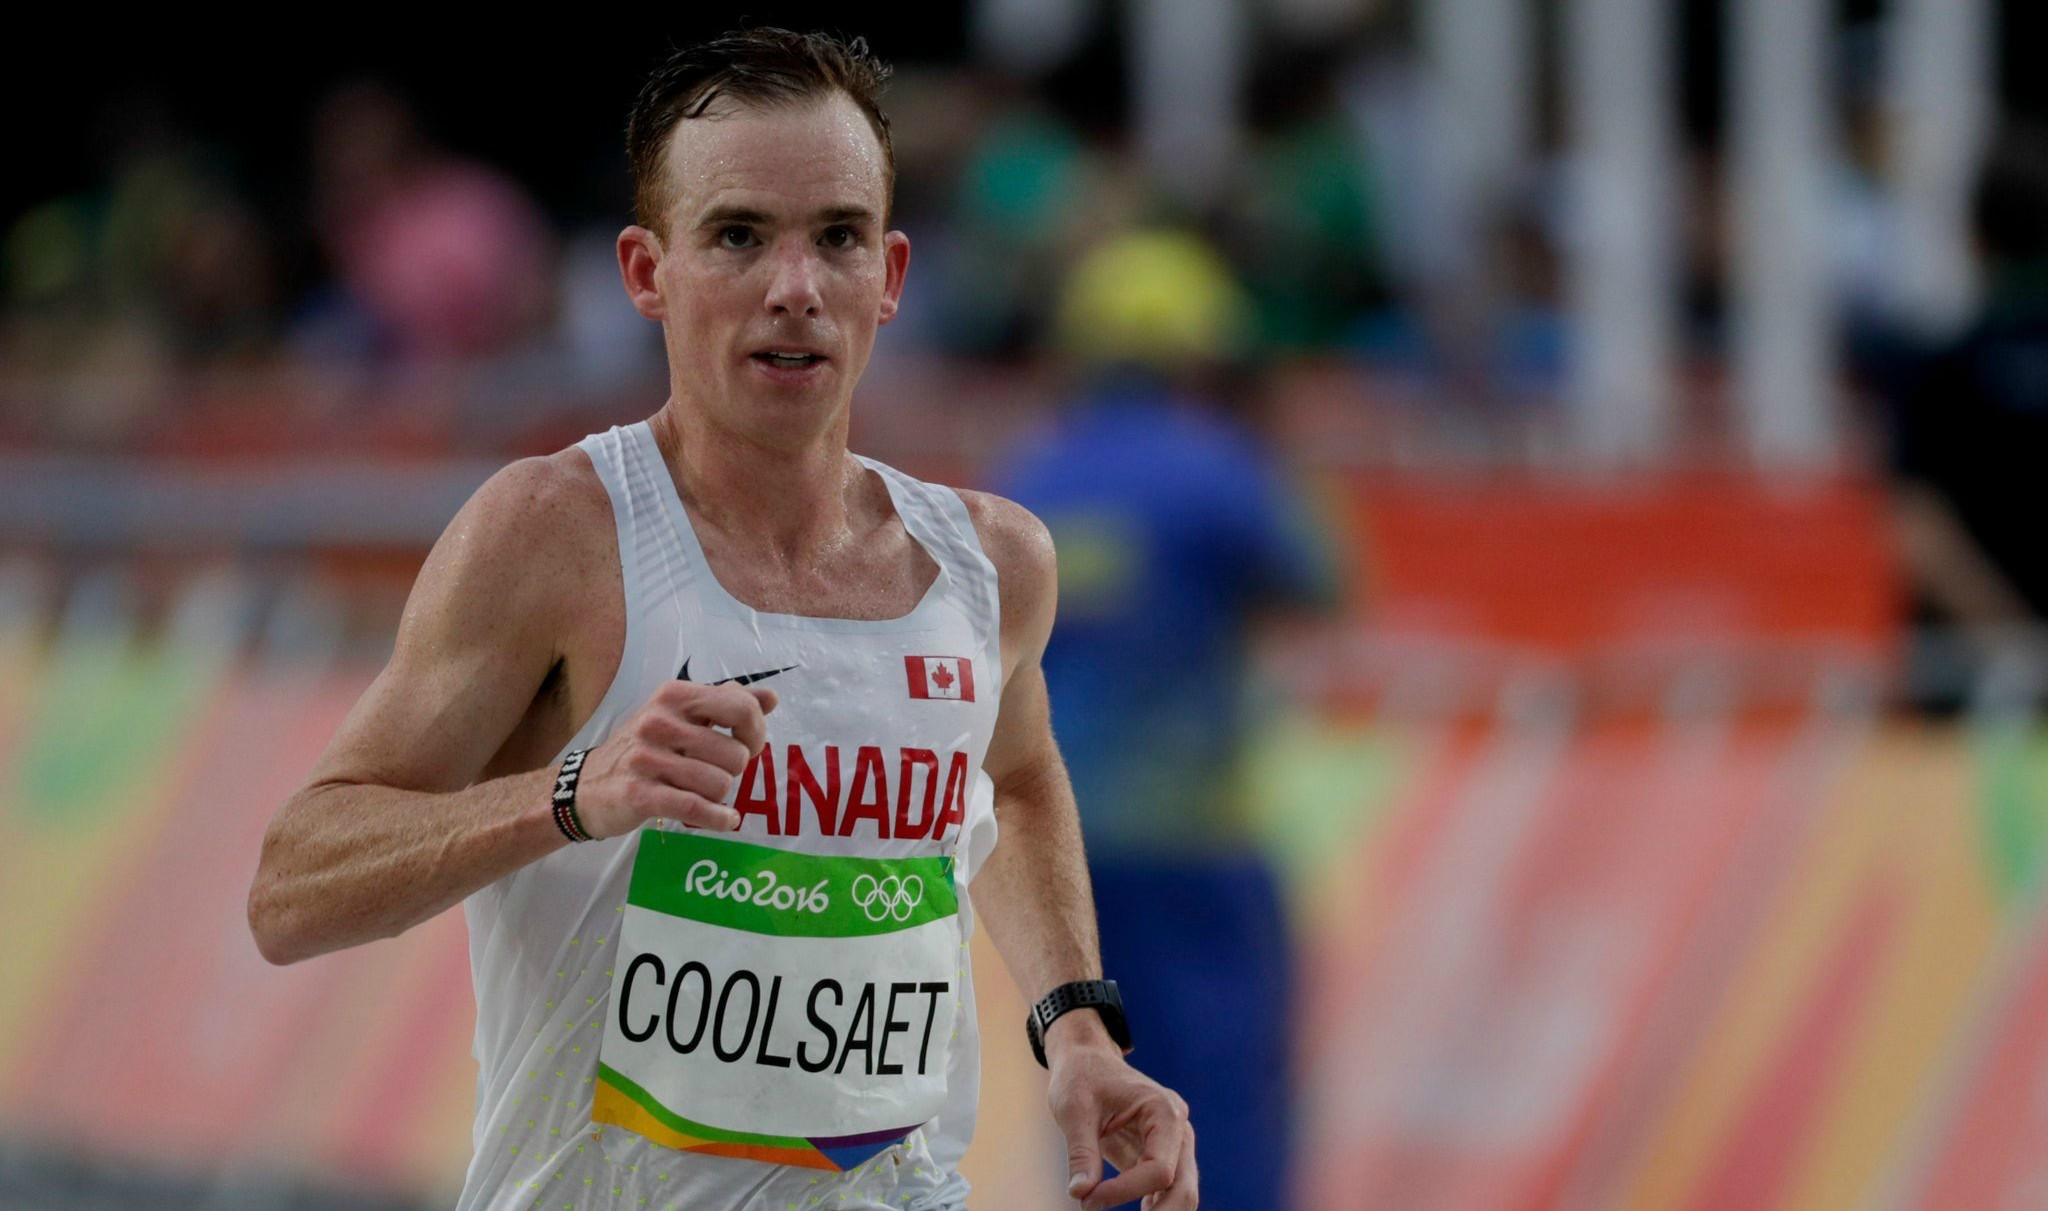 Reid Coolsaet runs the marathon at the 2016 Rio Olympic Games. When he broke a foot in 2008, a doctor told him to give up running.